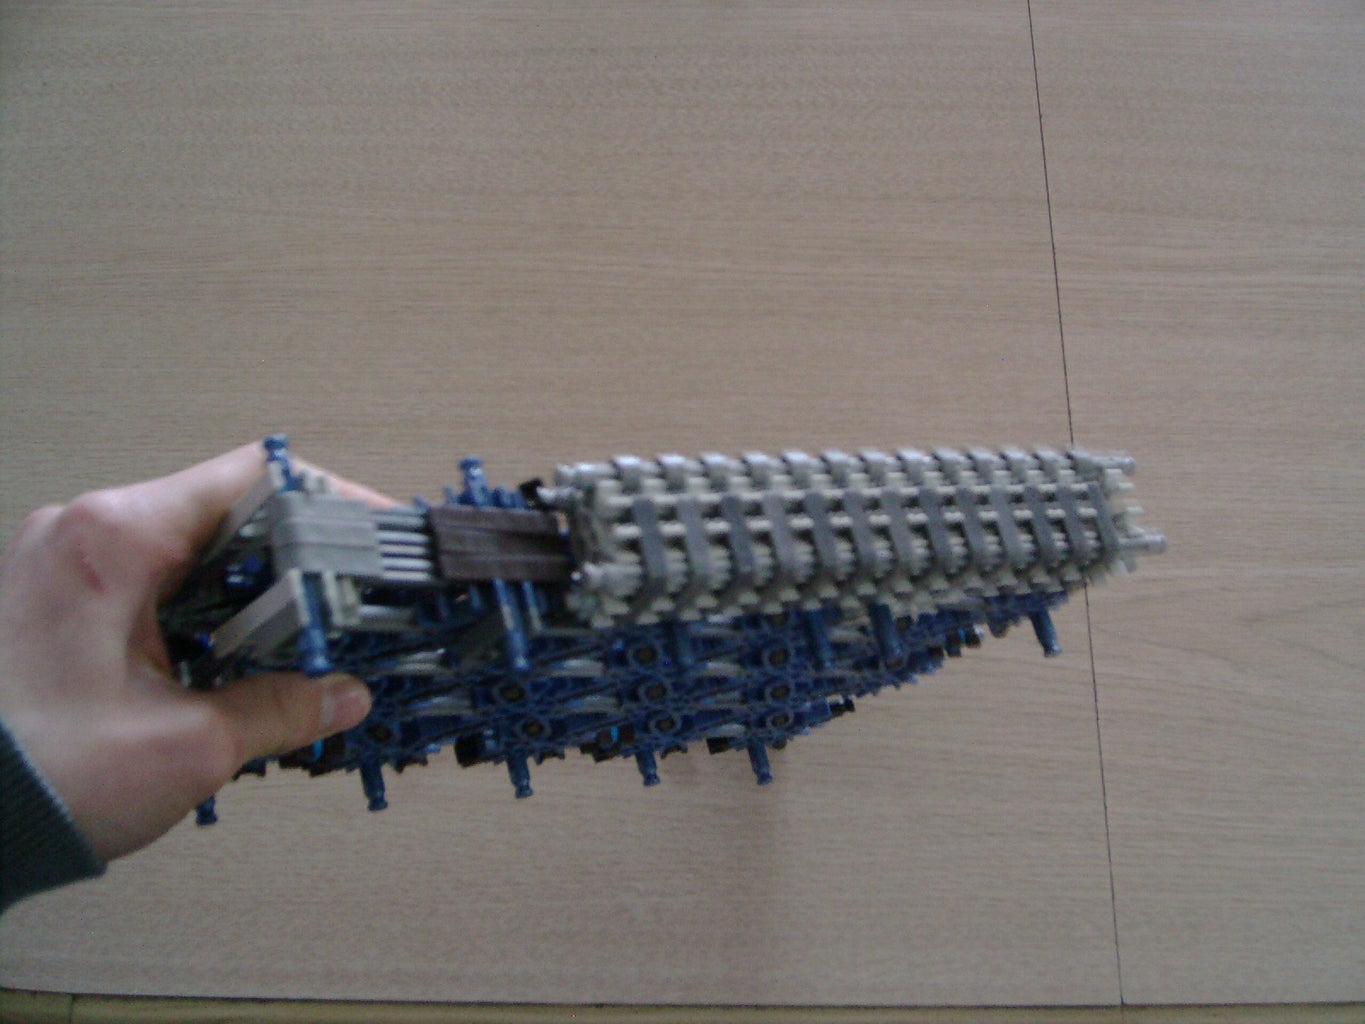 The Foregrip